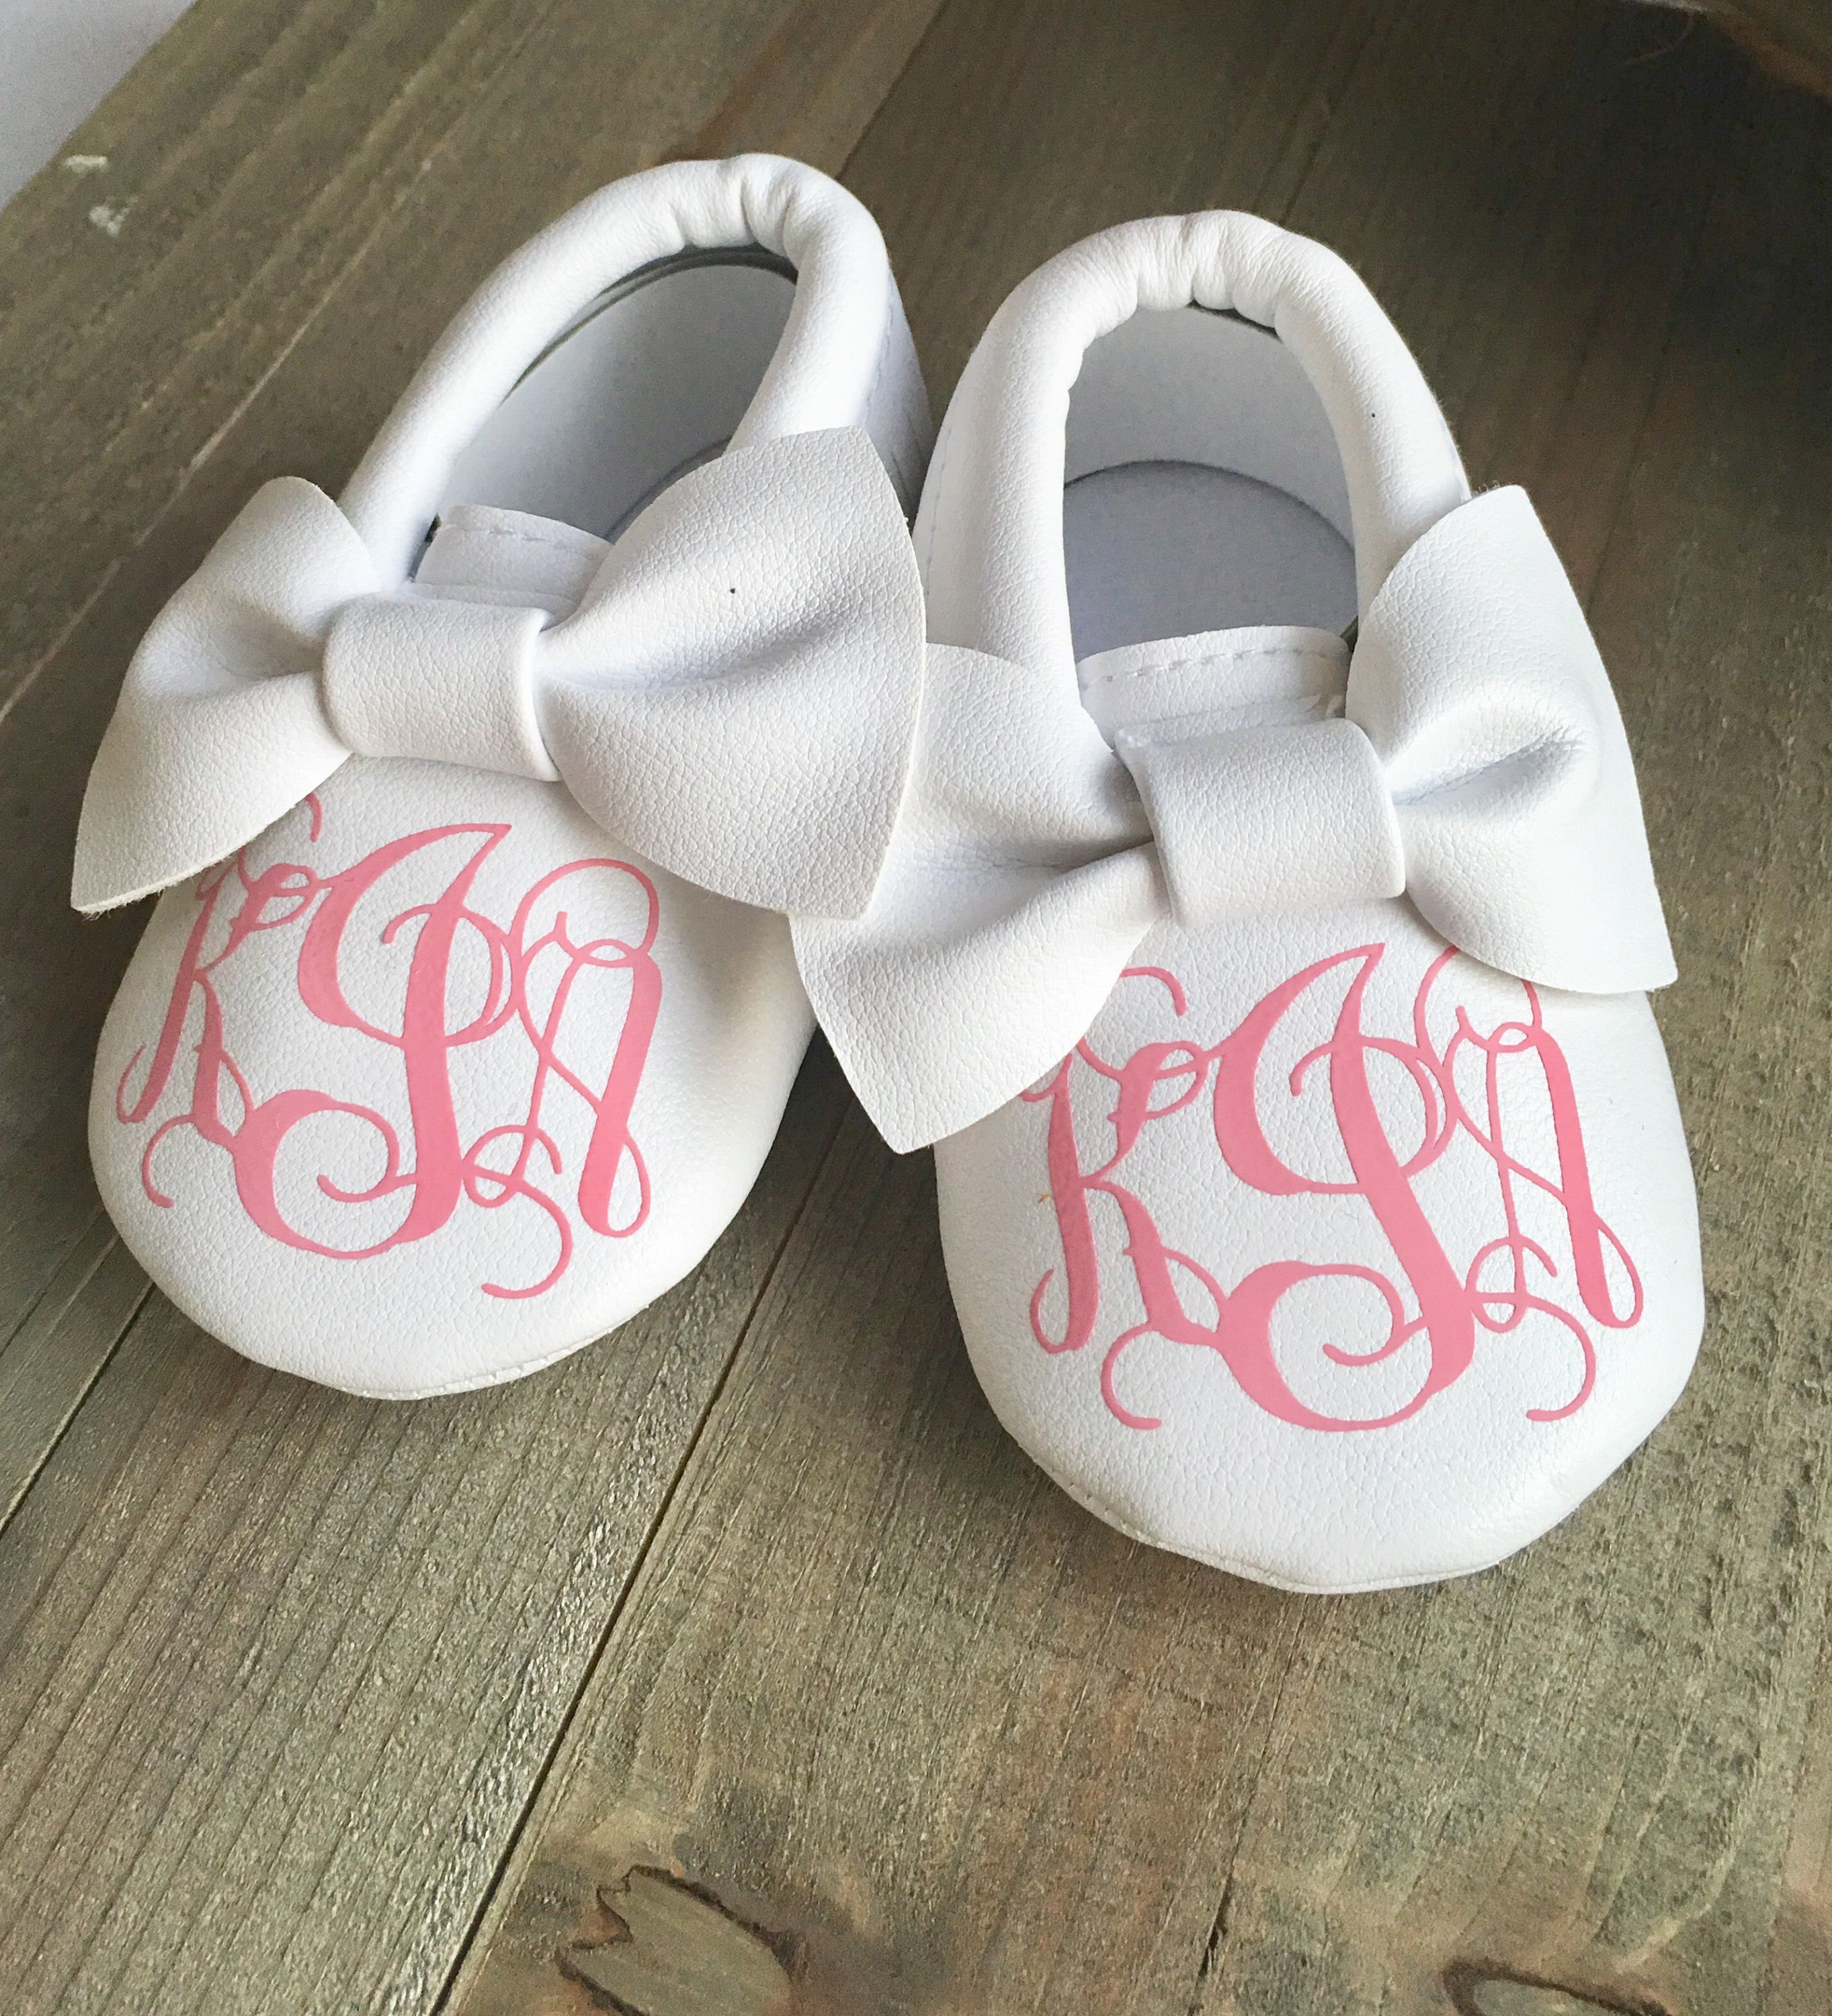 79f6fa8ba2ca Personalized Moccasins - Baby Moccasins - Monogram Shoes - Initials on Shoes  - Design Shoes - Custom Baby Shoes - Personalized Baby Moccasin by ...